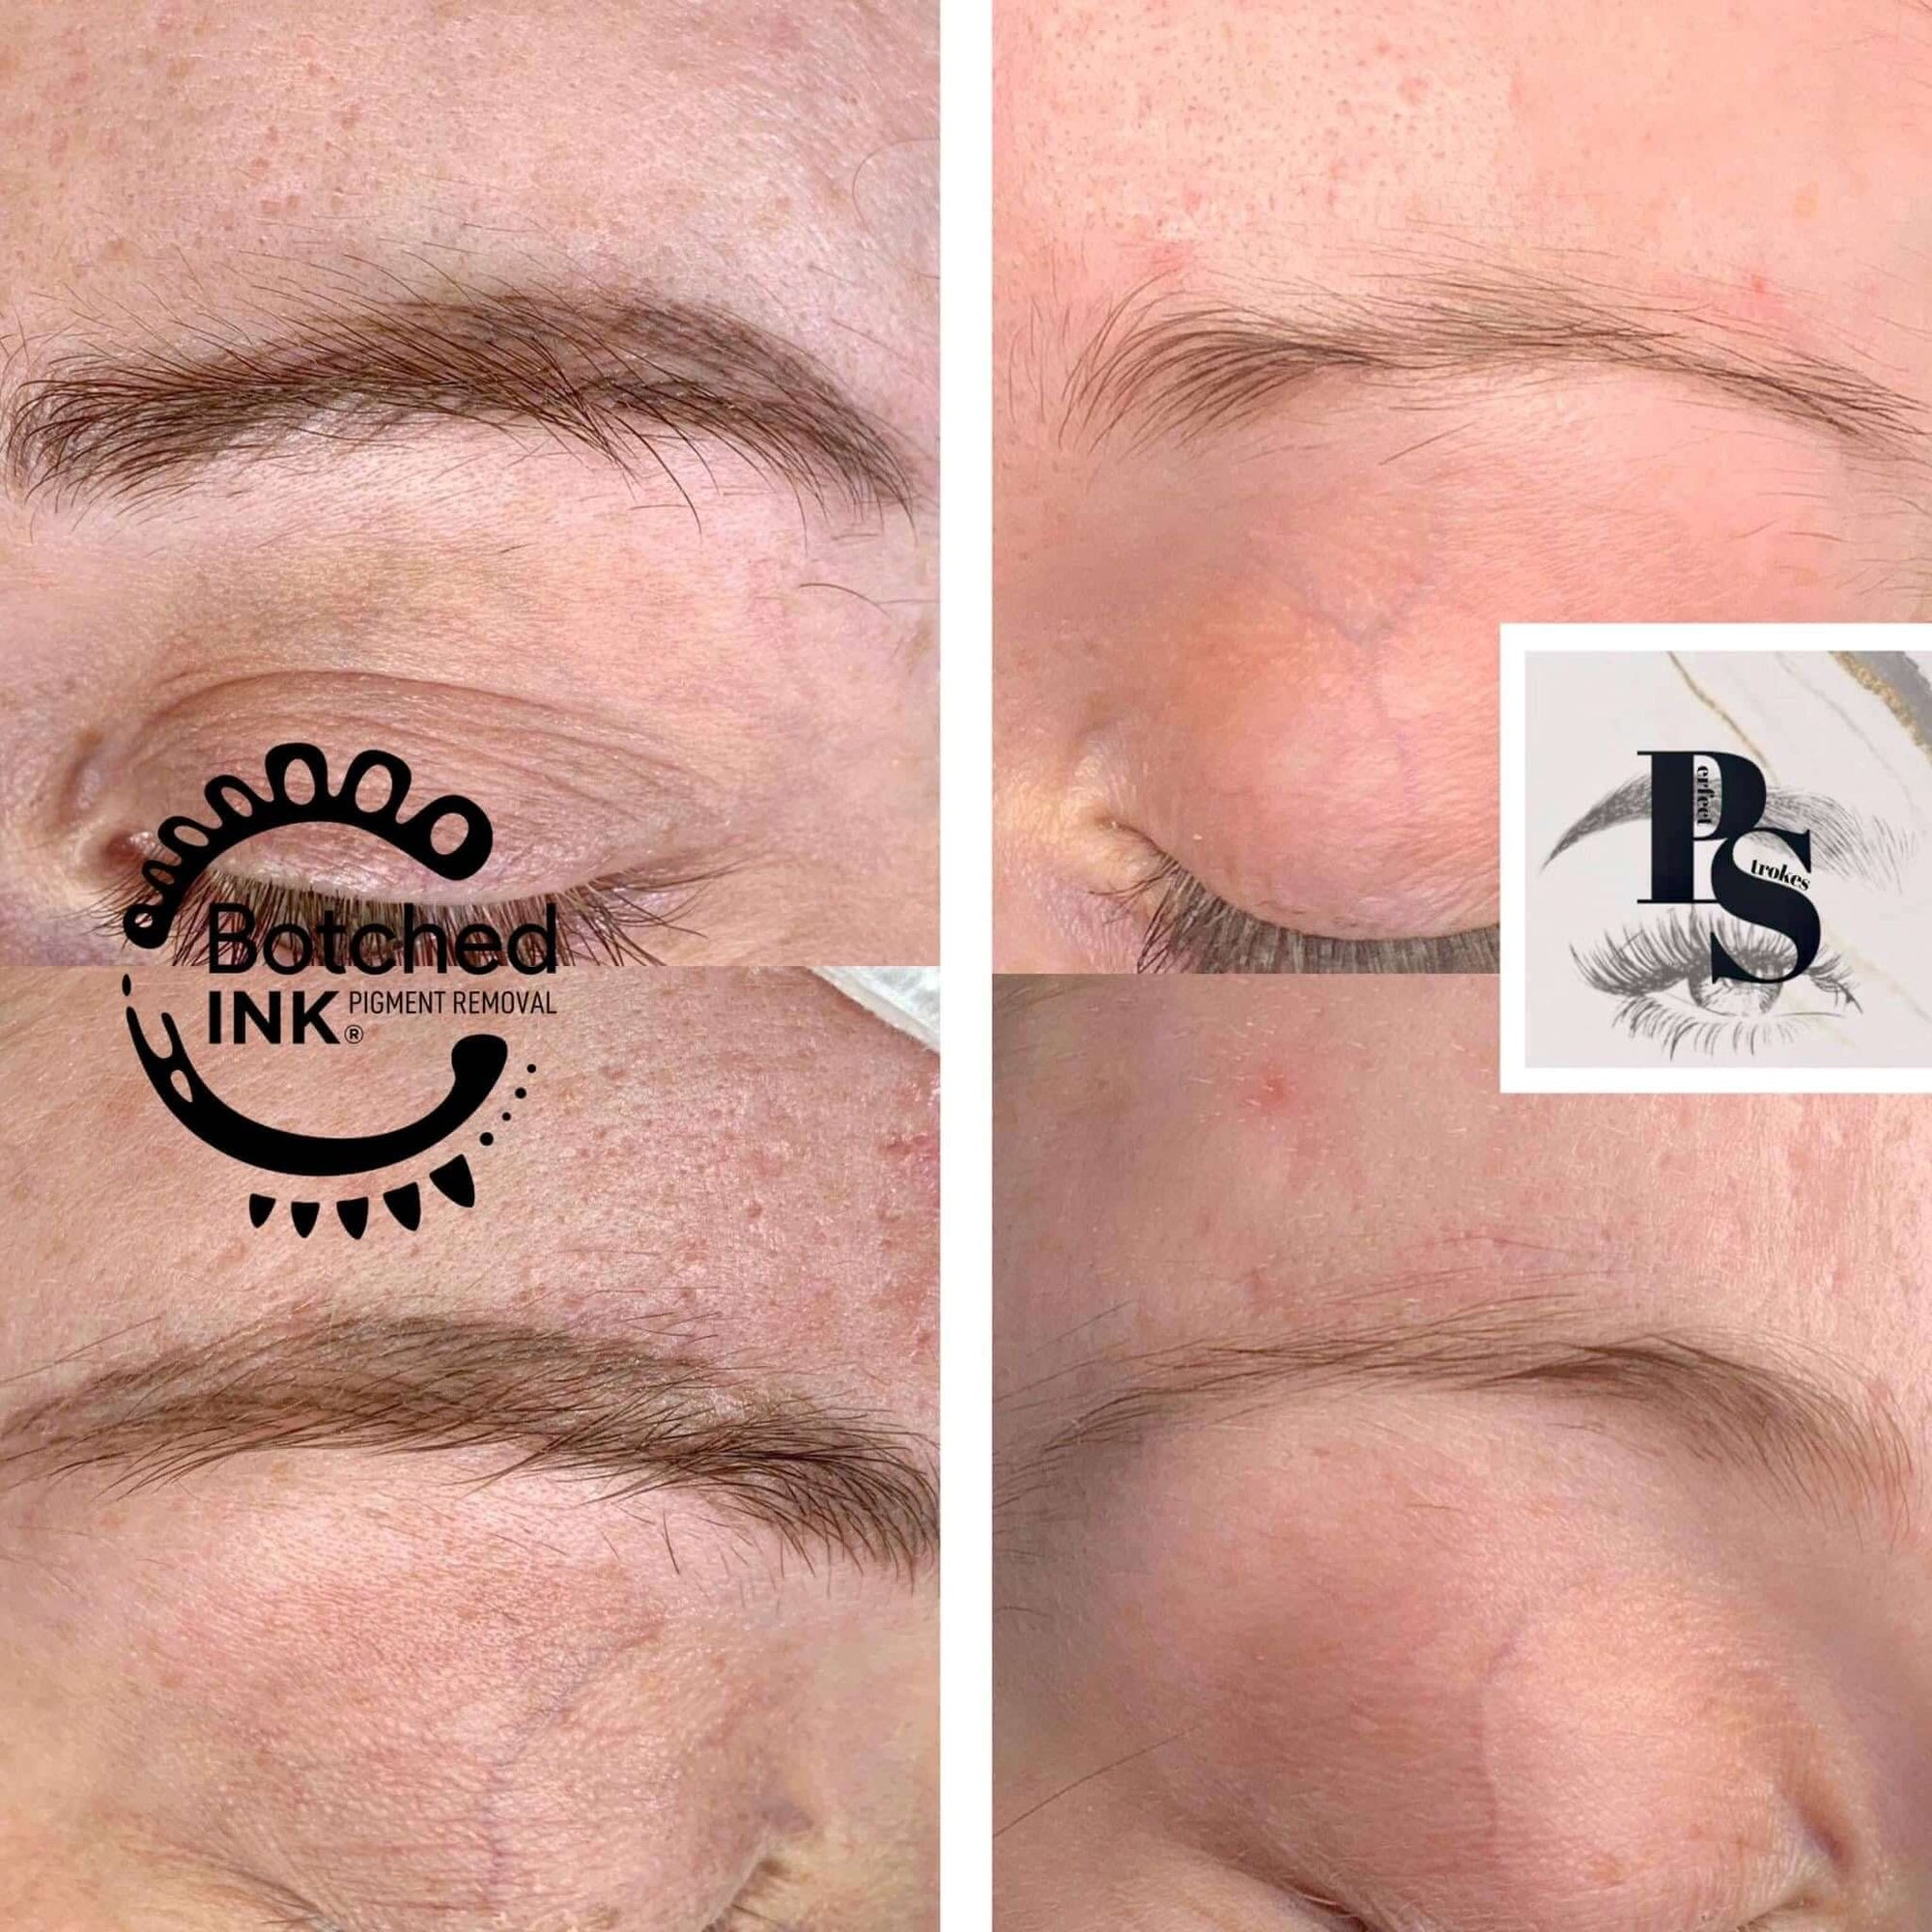 Botched Ink emergency saline tattoo removal lift correct improve bad microblading permanent makeup eyebrow tattoo brow training online zoom webinar model